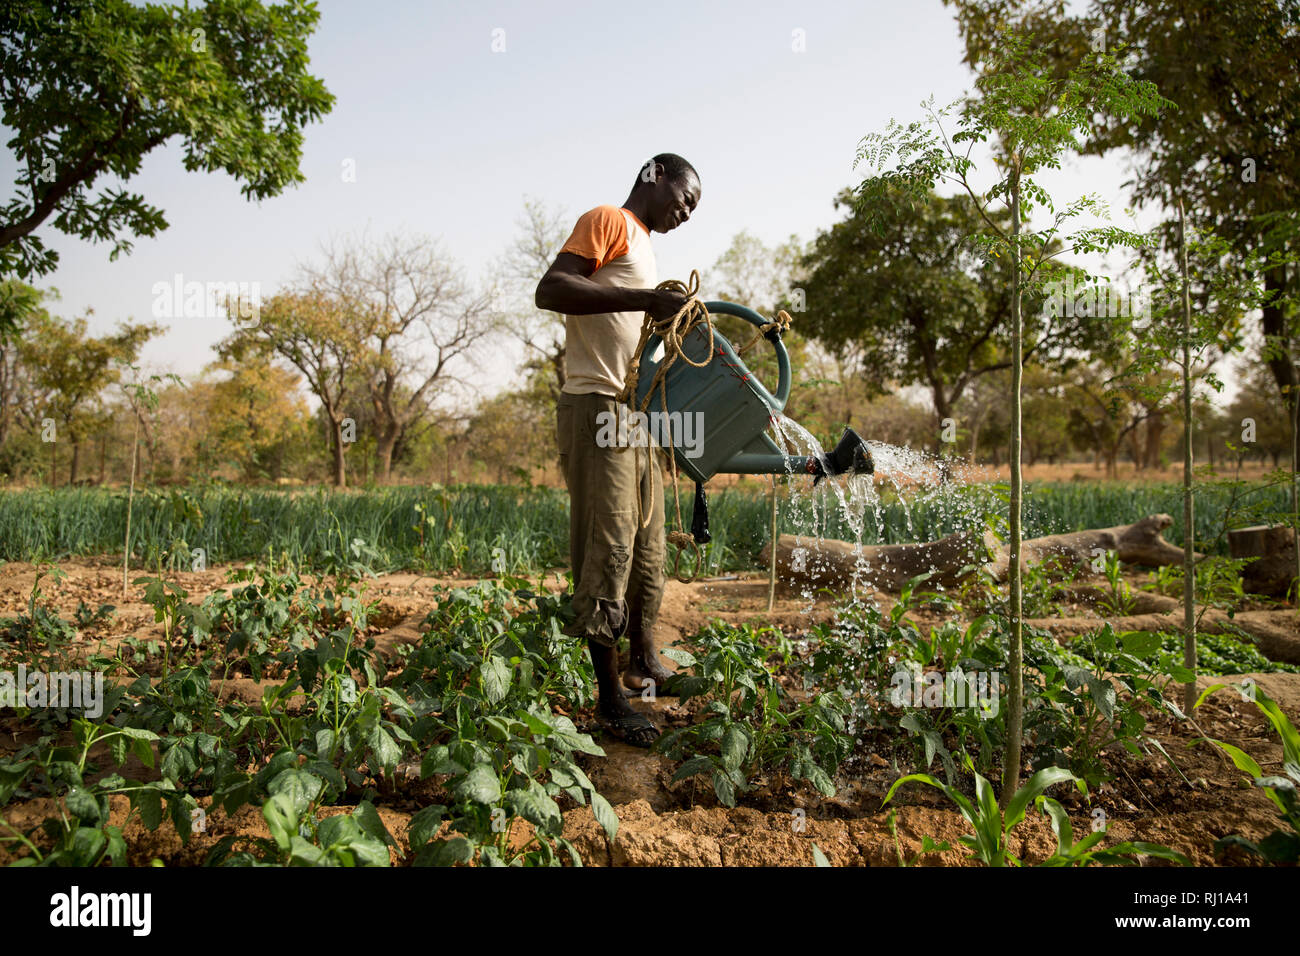 Samba village, Yako Province, Burkina Faso: Portait of Denis Zoundi, 45,with tribal scars, while watering crops on his market garden. Stock Photo